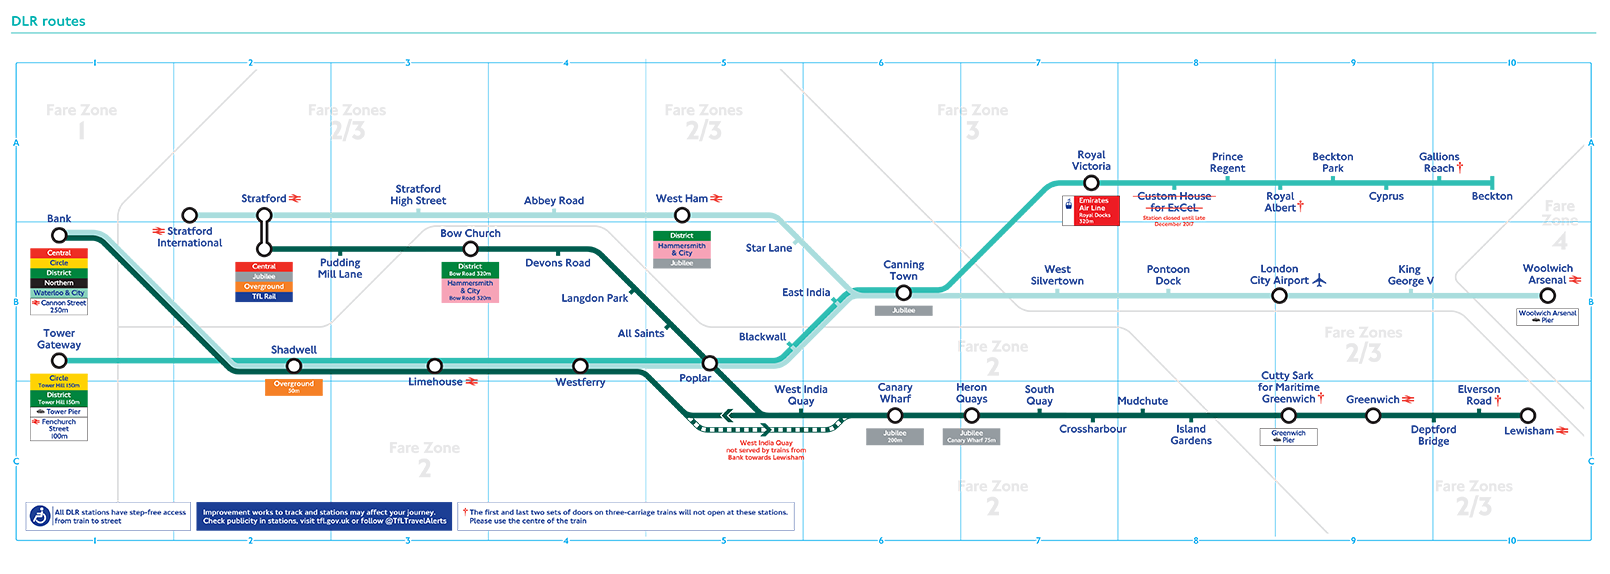 Tube Nerds Rejoice, There's A New Map To Celebrate The DLR's 30th